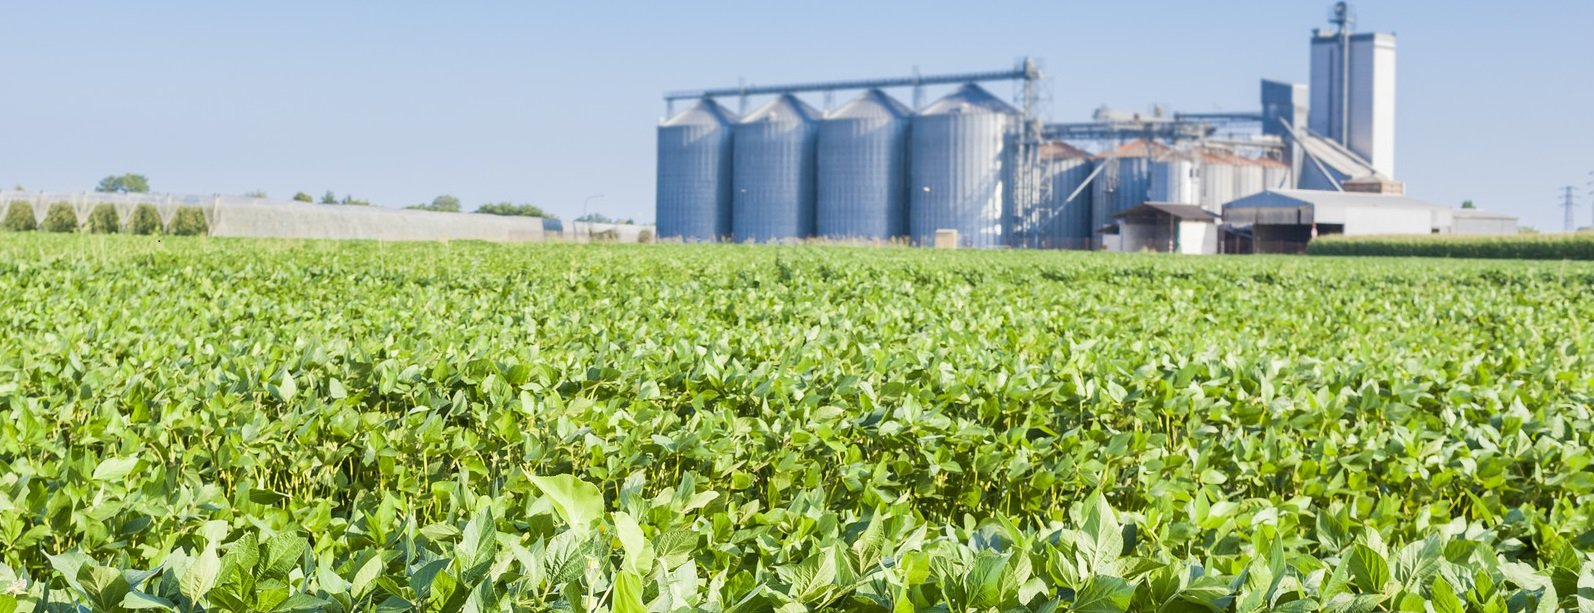 Soybeans_CROPPED